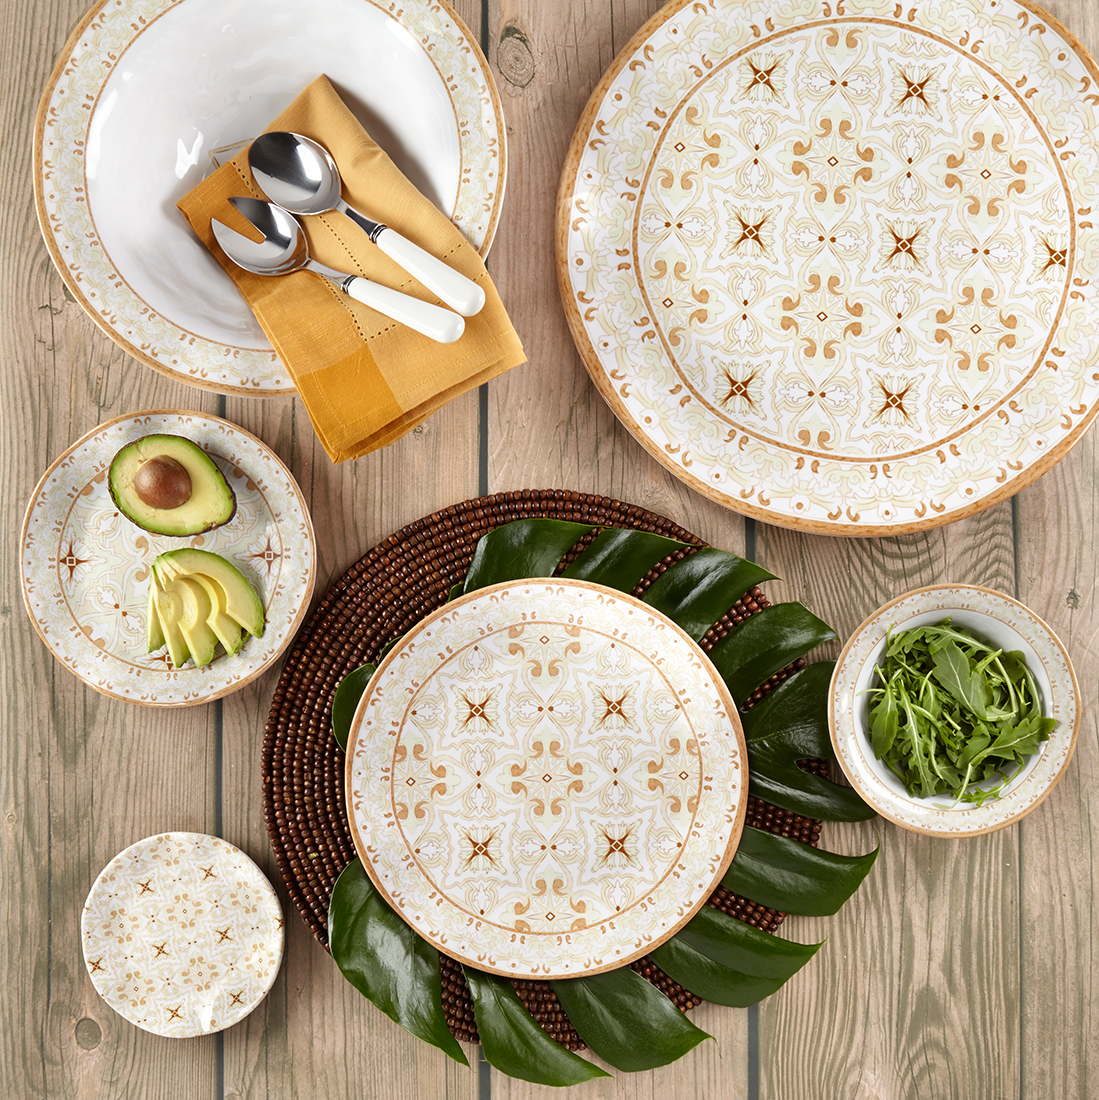 Effortless Entertaining with Melamine Dinnerware